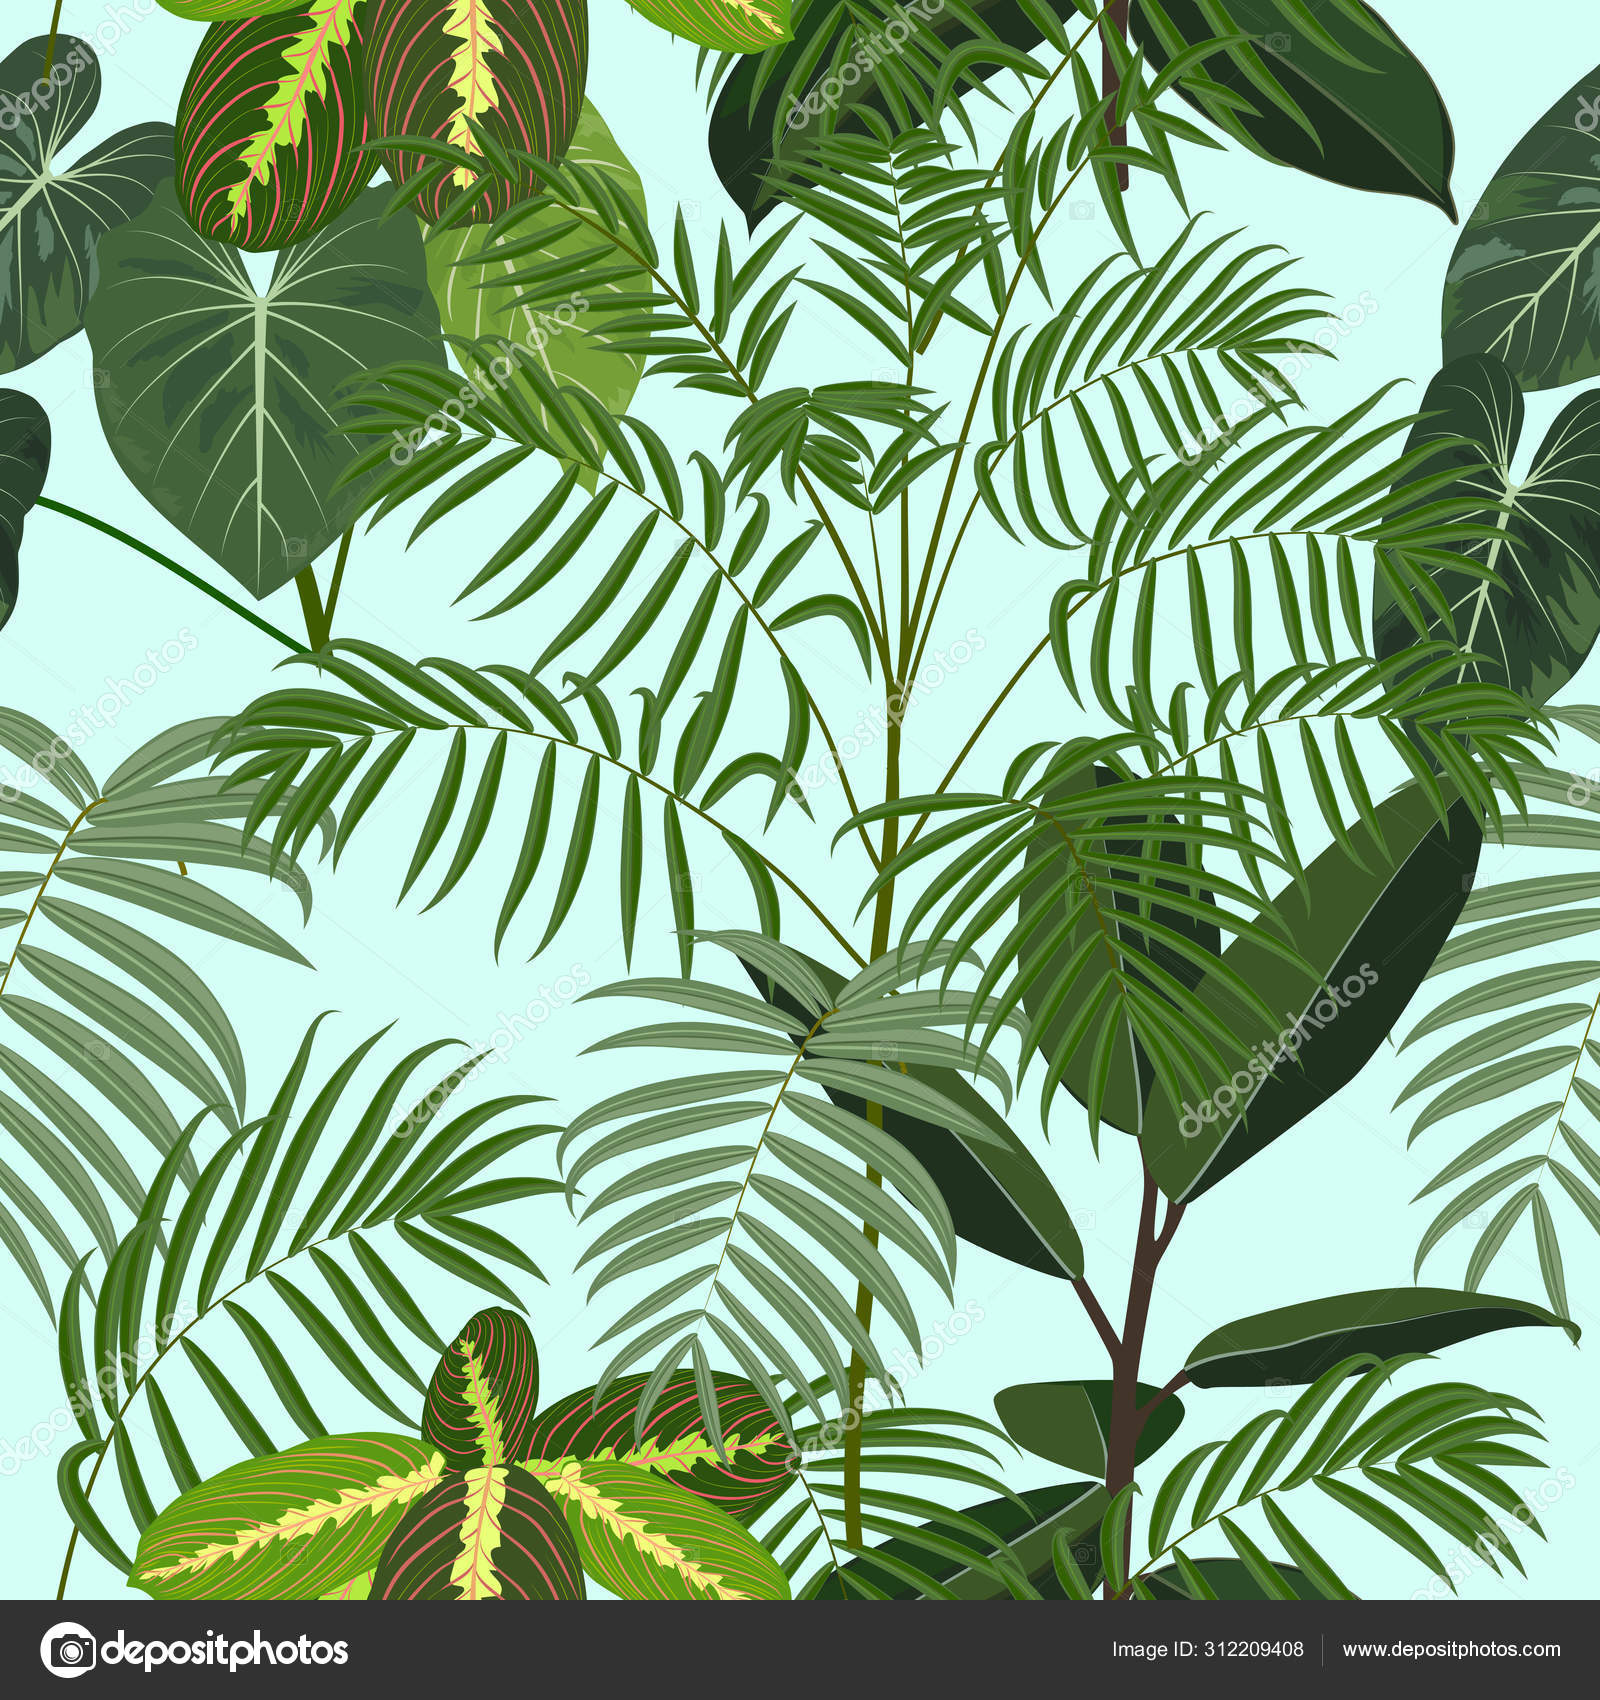 Tropical Jungle Palm Leaves Seamless Pattern Vector Background Stock Vector C Artlu 312209408 Find images of tropical leaves. depositphotos